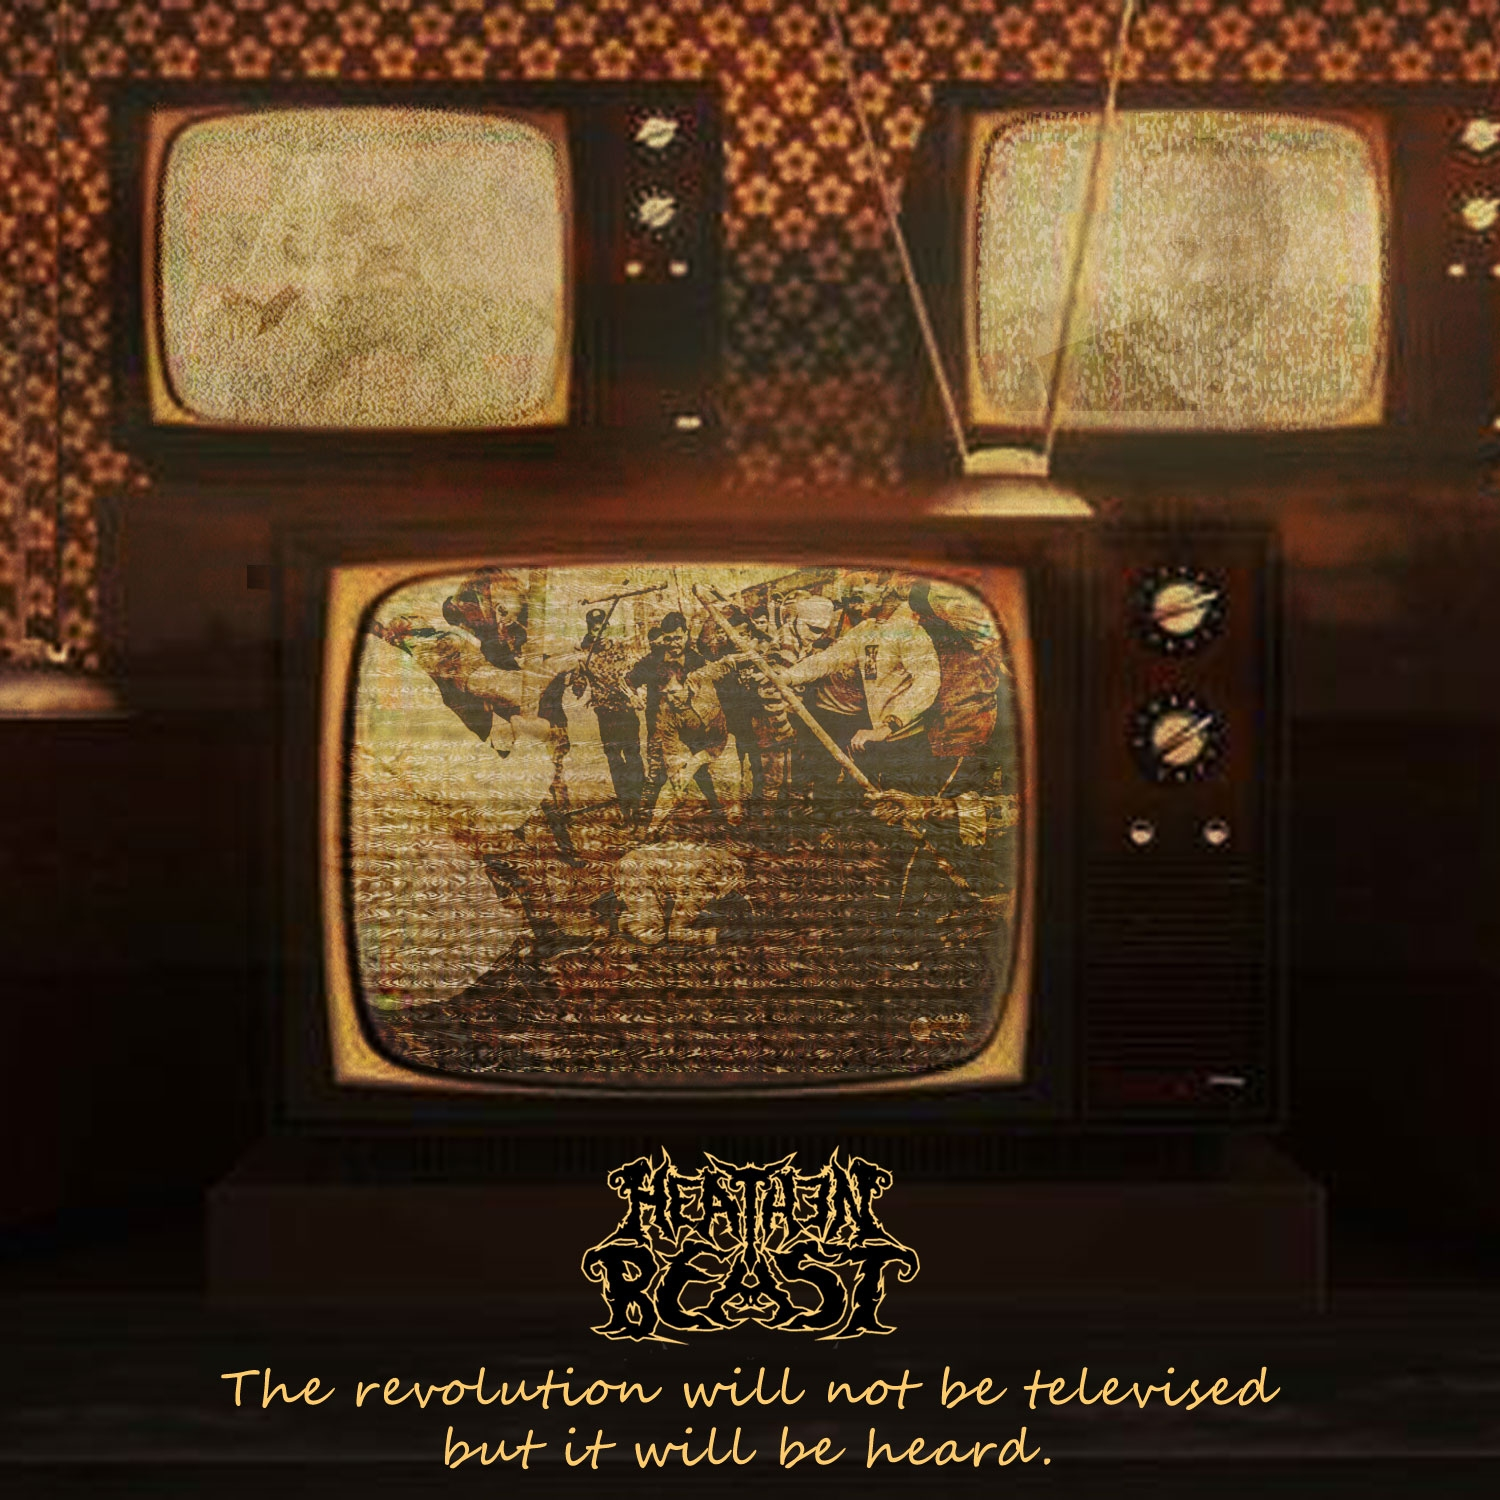 Heathen Beast – The Revolution Will Not Be Televised But It Will Be Heard